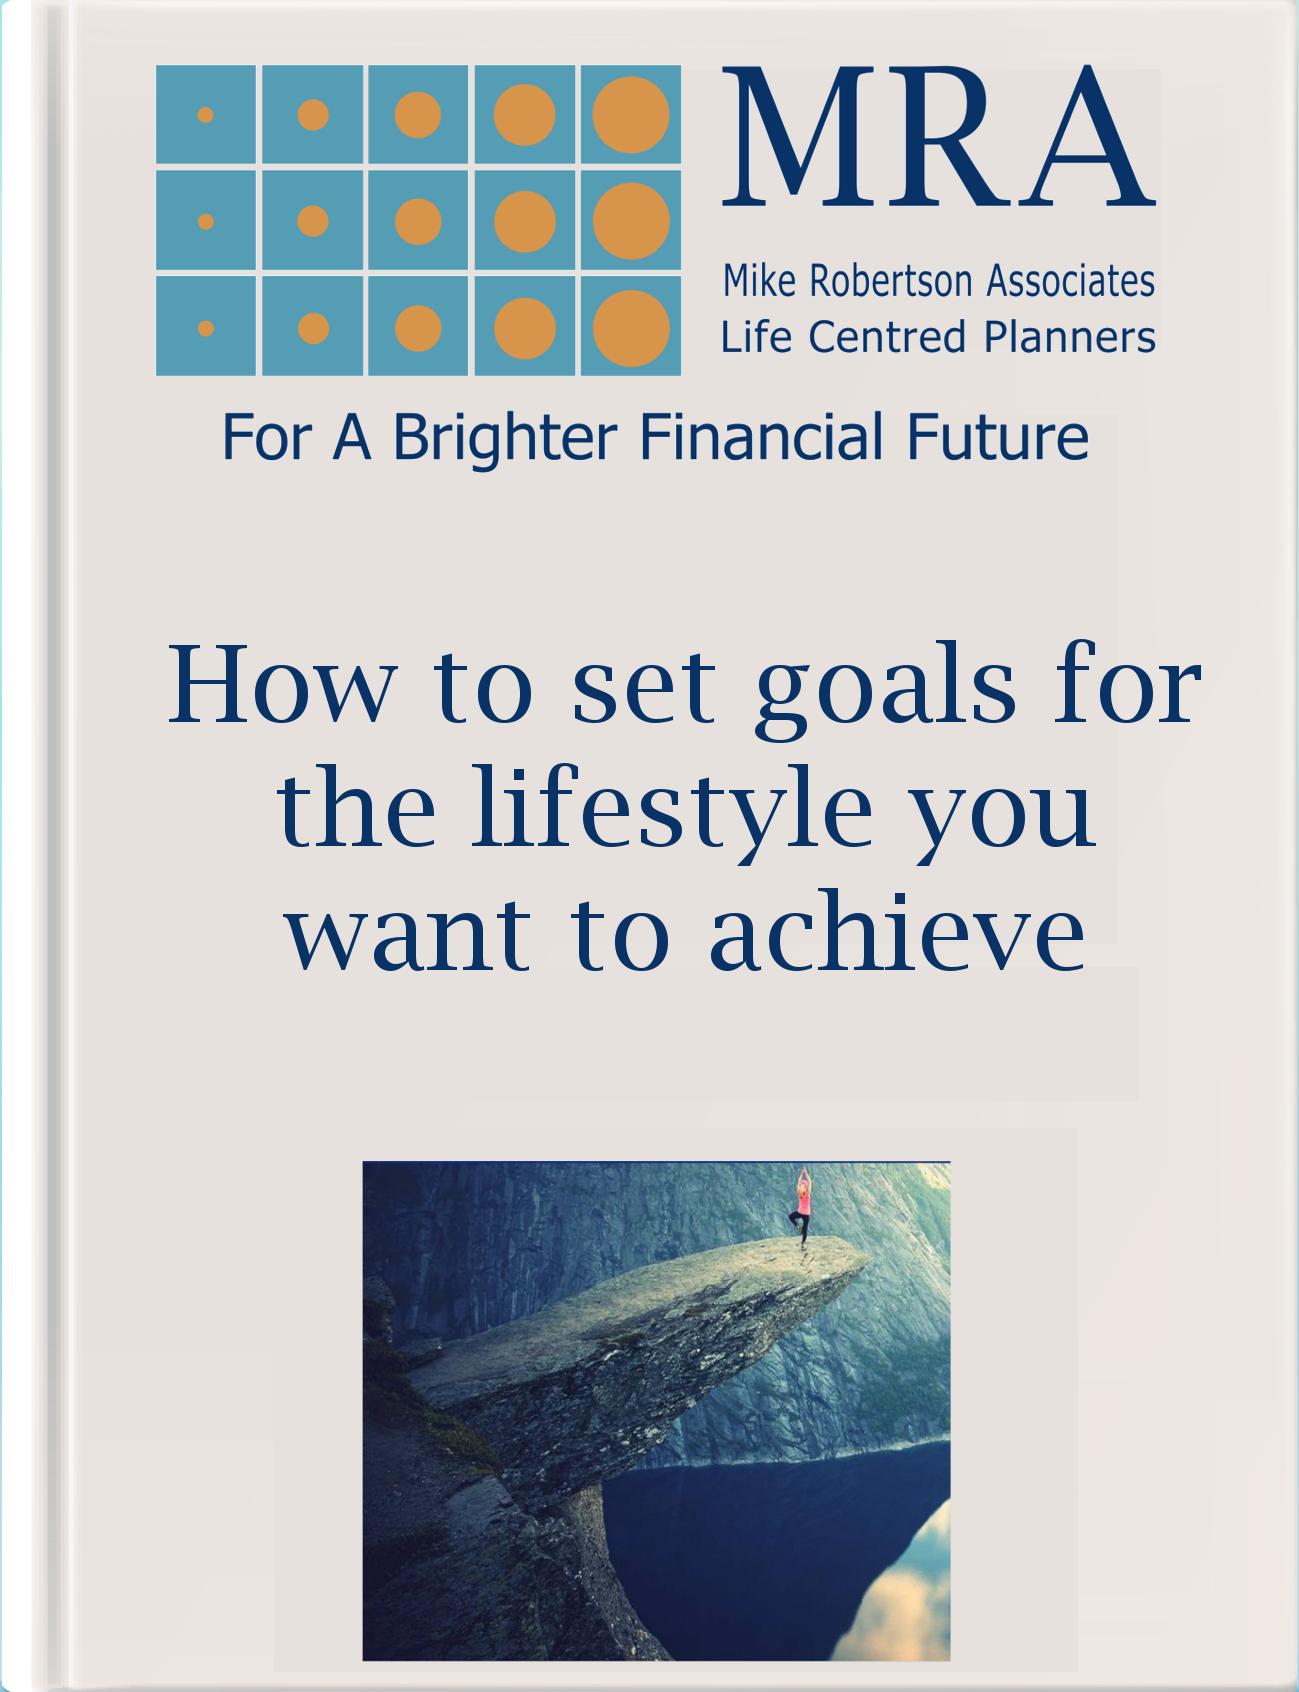 Download our Goal Setting EBook. Lifestyle Financial Planners, Lifestyle Financial Planning, Life Centred Financial Planning, Life Centred Financial Planners, Independent Financial Adviser, Independent Financial Advisor, IFA Local, Life Style Financial Consultant, Life Centred Financial Consultant, Personal Financial Planning, Financial Planning, Personal Financial Planning, Personal Finances, Financial Consultant, Pensions, Pensions Planner, Retirement Planning, Retirement Planner, Tax Planning, Tax Planning Consultant, Tax Planning Adviser, Tax Consultant, Tax Planning Advisor, Cash Flow Budgeting, Banking, Insurance, Term Assurance, Mortgage Consultant, Mortgage Adviser, Mortgage Advisor, Mortgages, Savings, Pesonal Savings, Investments, Estate Planning, Estate Planner, Later Life Planning, Wealth Management, Business Adviser, Business Consultant, Forecasting, Investments, Portfolio Planning, Financial Guidance, Financial Security, Family Protection, Critical Illness, Critical Illness Planning, Critical Illness Protection, Tax Efficient Savings, Tax Planning, Tax Efficient Investments, Saving For Long Term Goals, Savings For Long Term Care, Life Centred Financial Advice, Life Centred Adviser, Life Centred Advisor, Life Centered Planning, Life Centered Adviser, Cash Flow Forecasting, Residence Nil Rate Band, Land Registry, Tracing Land Registry Form, Financial Planning, Financial Planners, Work To Live Financial Planning, What is Inflation, How to beat Inflation, Selling a property in a limited company, SSAS Pensions, SSAS Pension, What is a SSAS, What is a SIPP, SIPP Planning, SSAS Planner, SIPP Planner, SSAS Planning, Stakeholder Pansions, Financial Freedom Reviews, When Can I Draw My State Pension, Saving Money, Ways To Save Money, Ways To Save money on a Tight Budget, Land Registry, What is An Annuity, Annuities, Lower My Bills, Nil Rate Band, Inheritance Tax Advice, Essential Corporate Solutions, Inheritance Tax Residence Nil Rate Band, Debt Relief Order, Lif